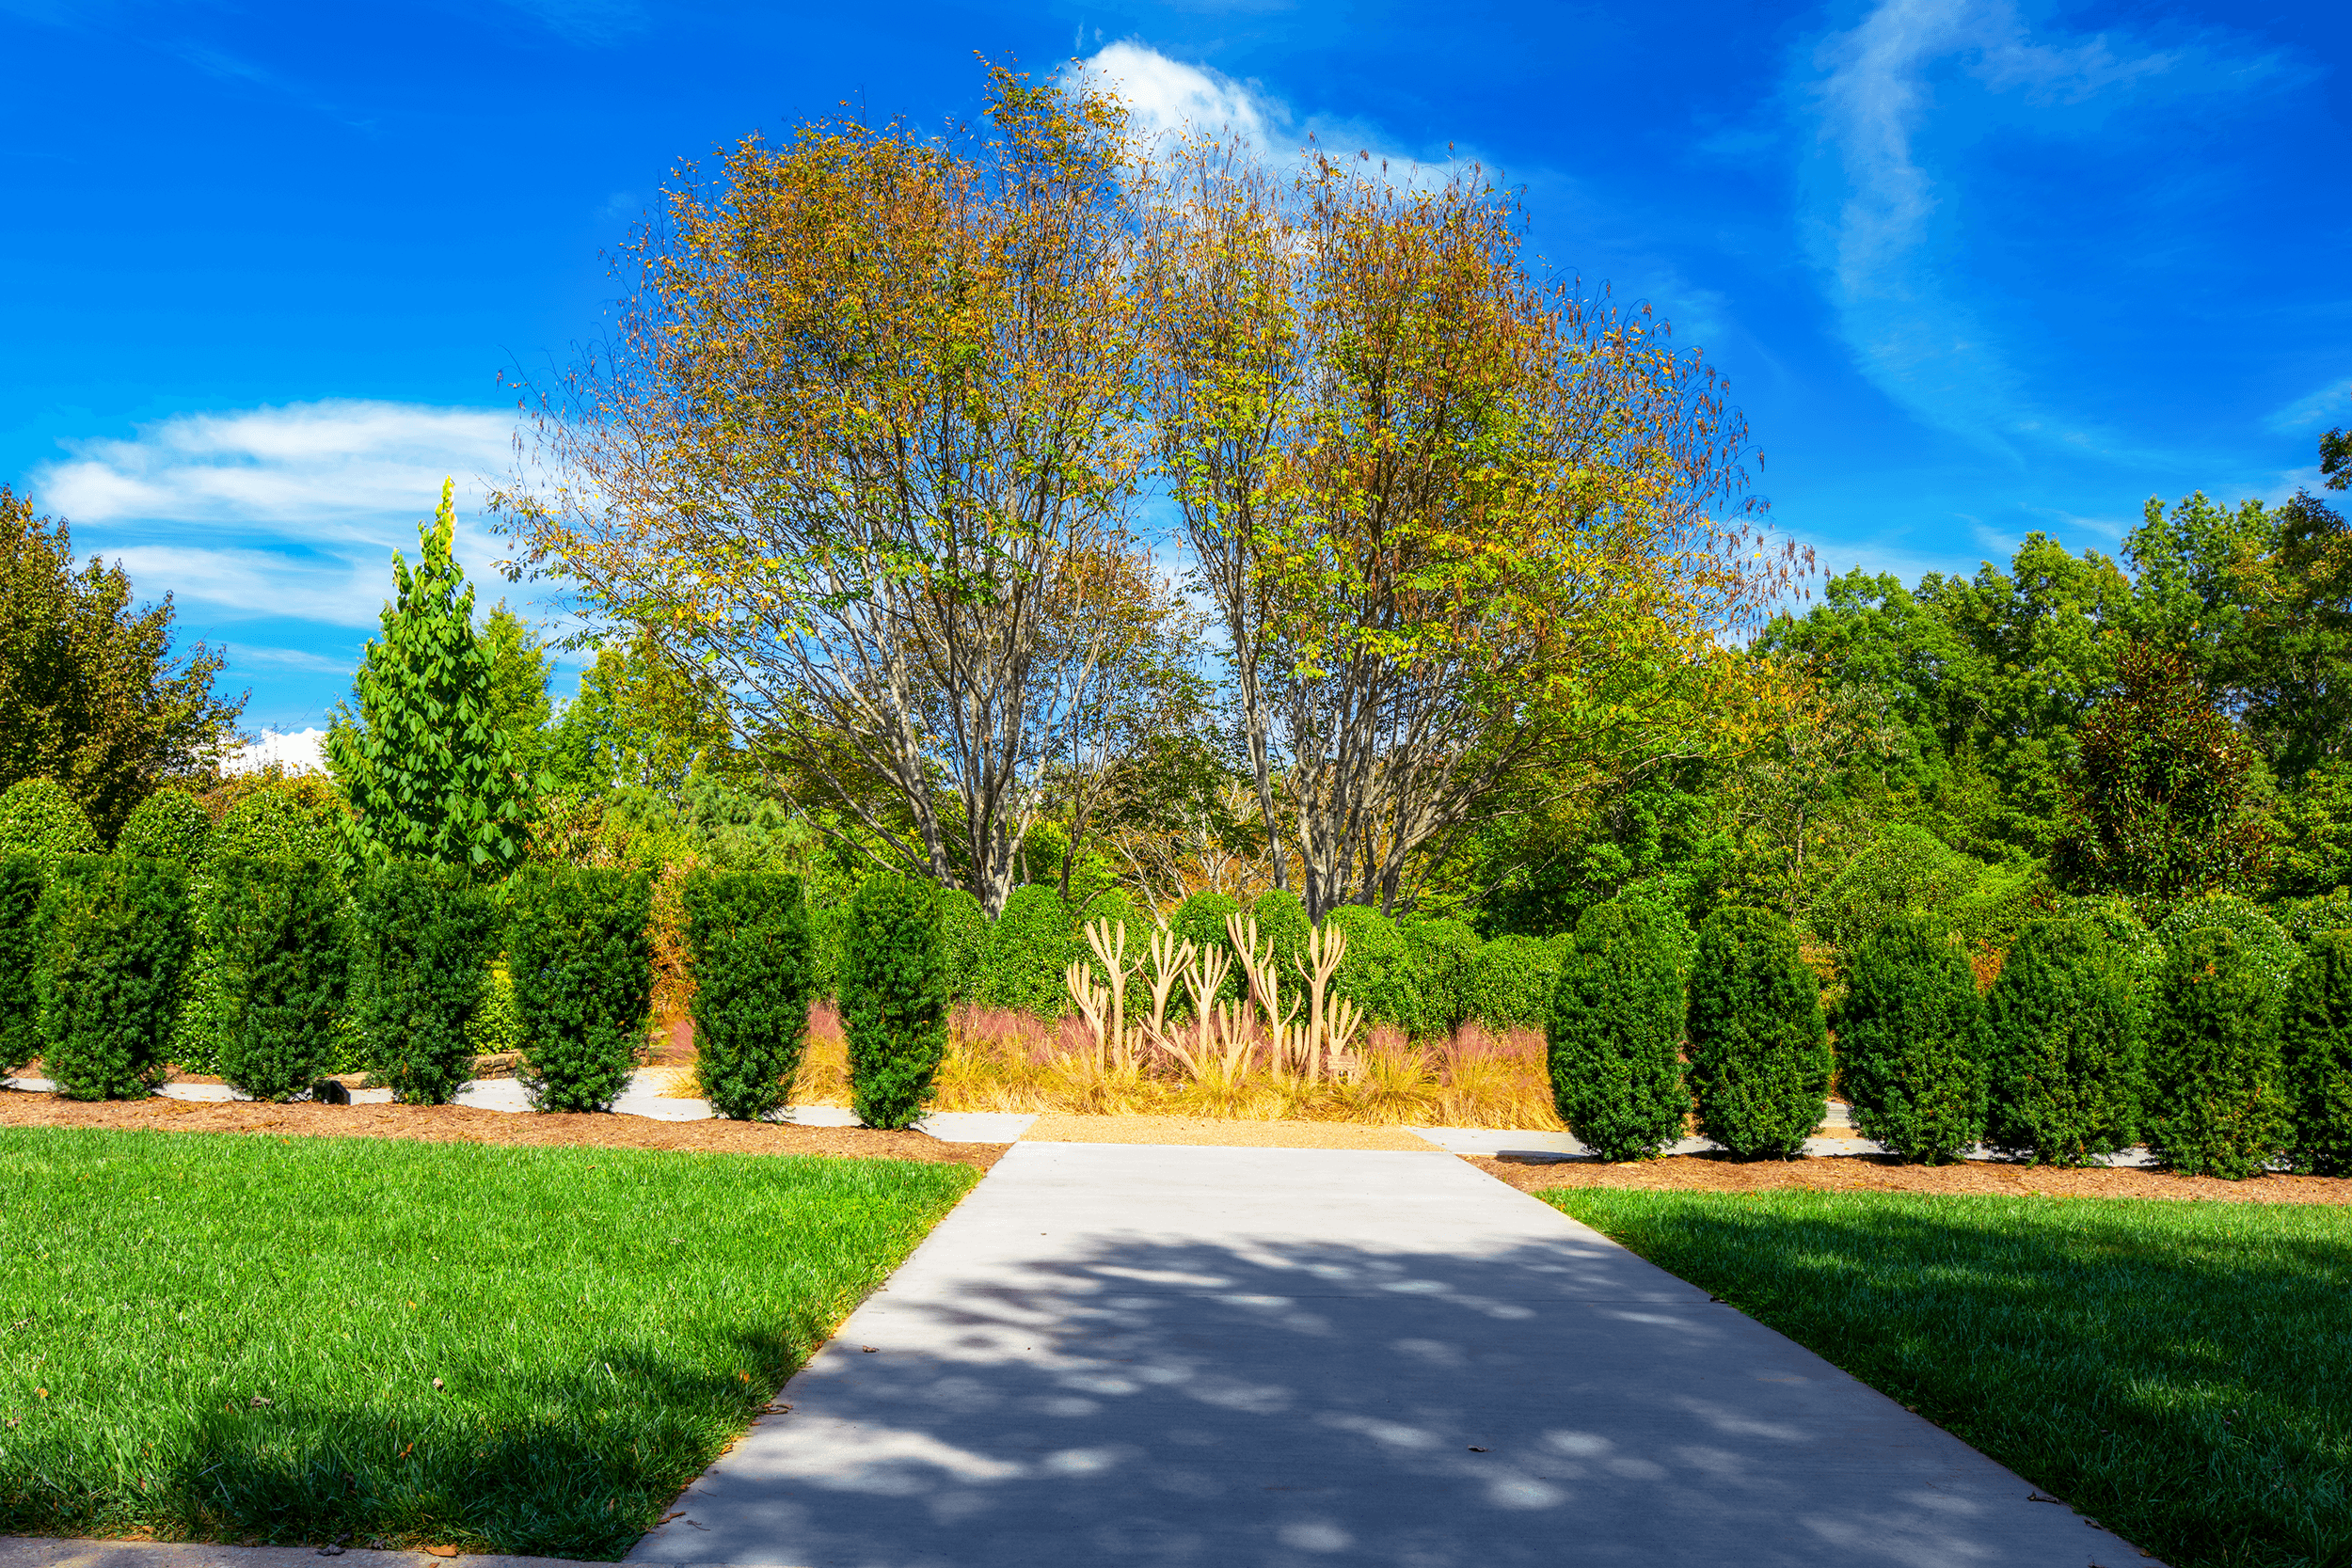 Benches are nicely placed throughout the garden to relax and admire the beautiful vistas and fantastic artwork.